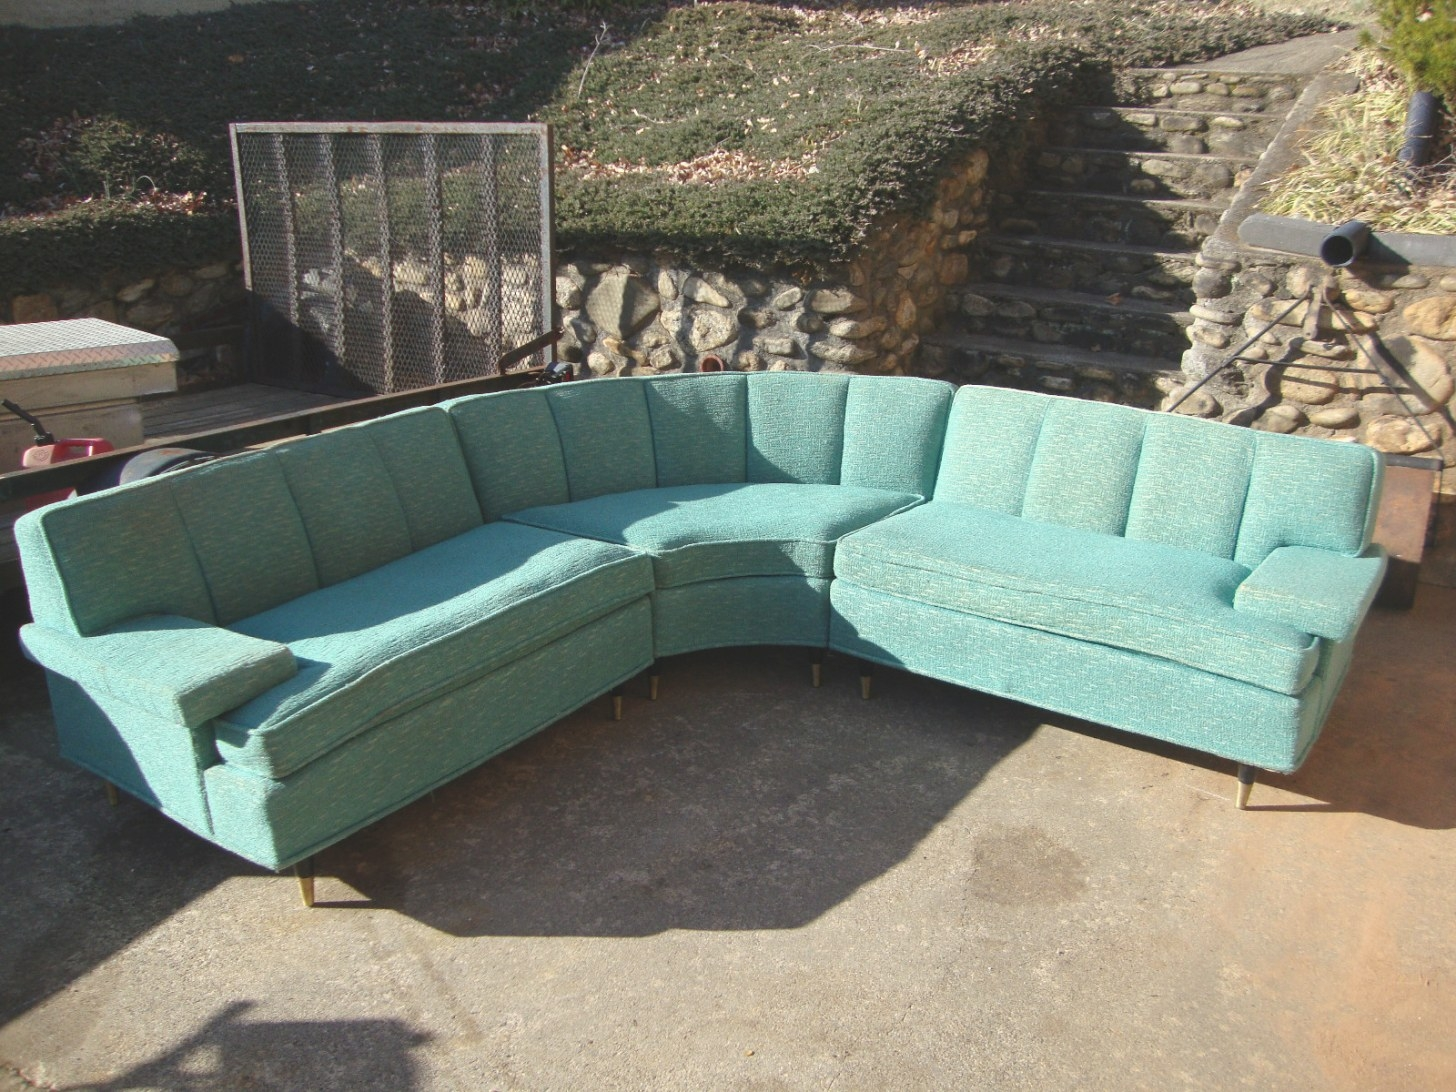 Modern 24 Seven: Finally! throughout Small Mid Century Modern Sectional